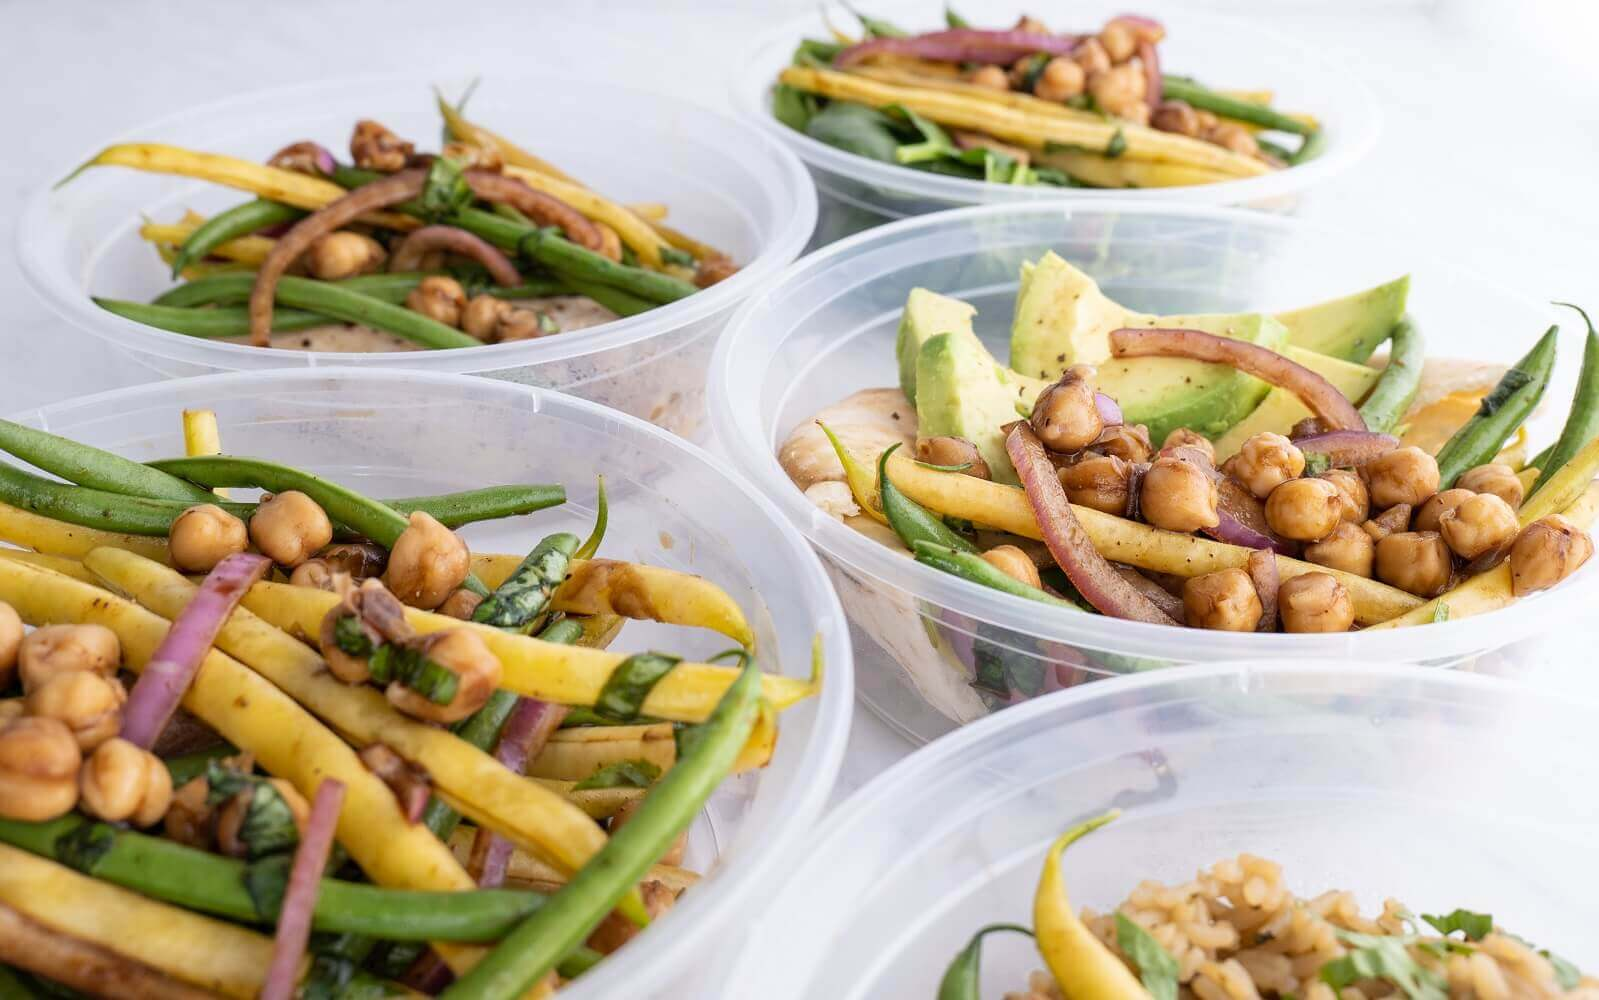 An excellent meal prep solution!